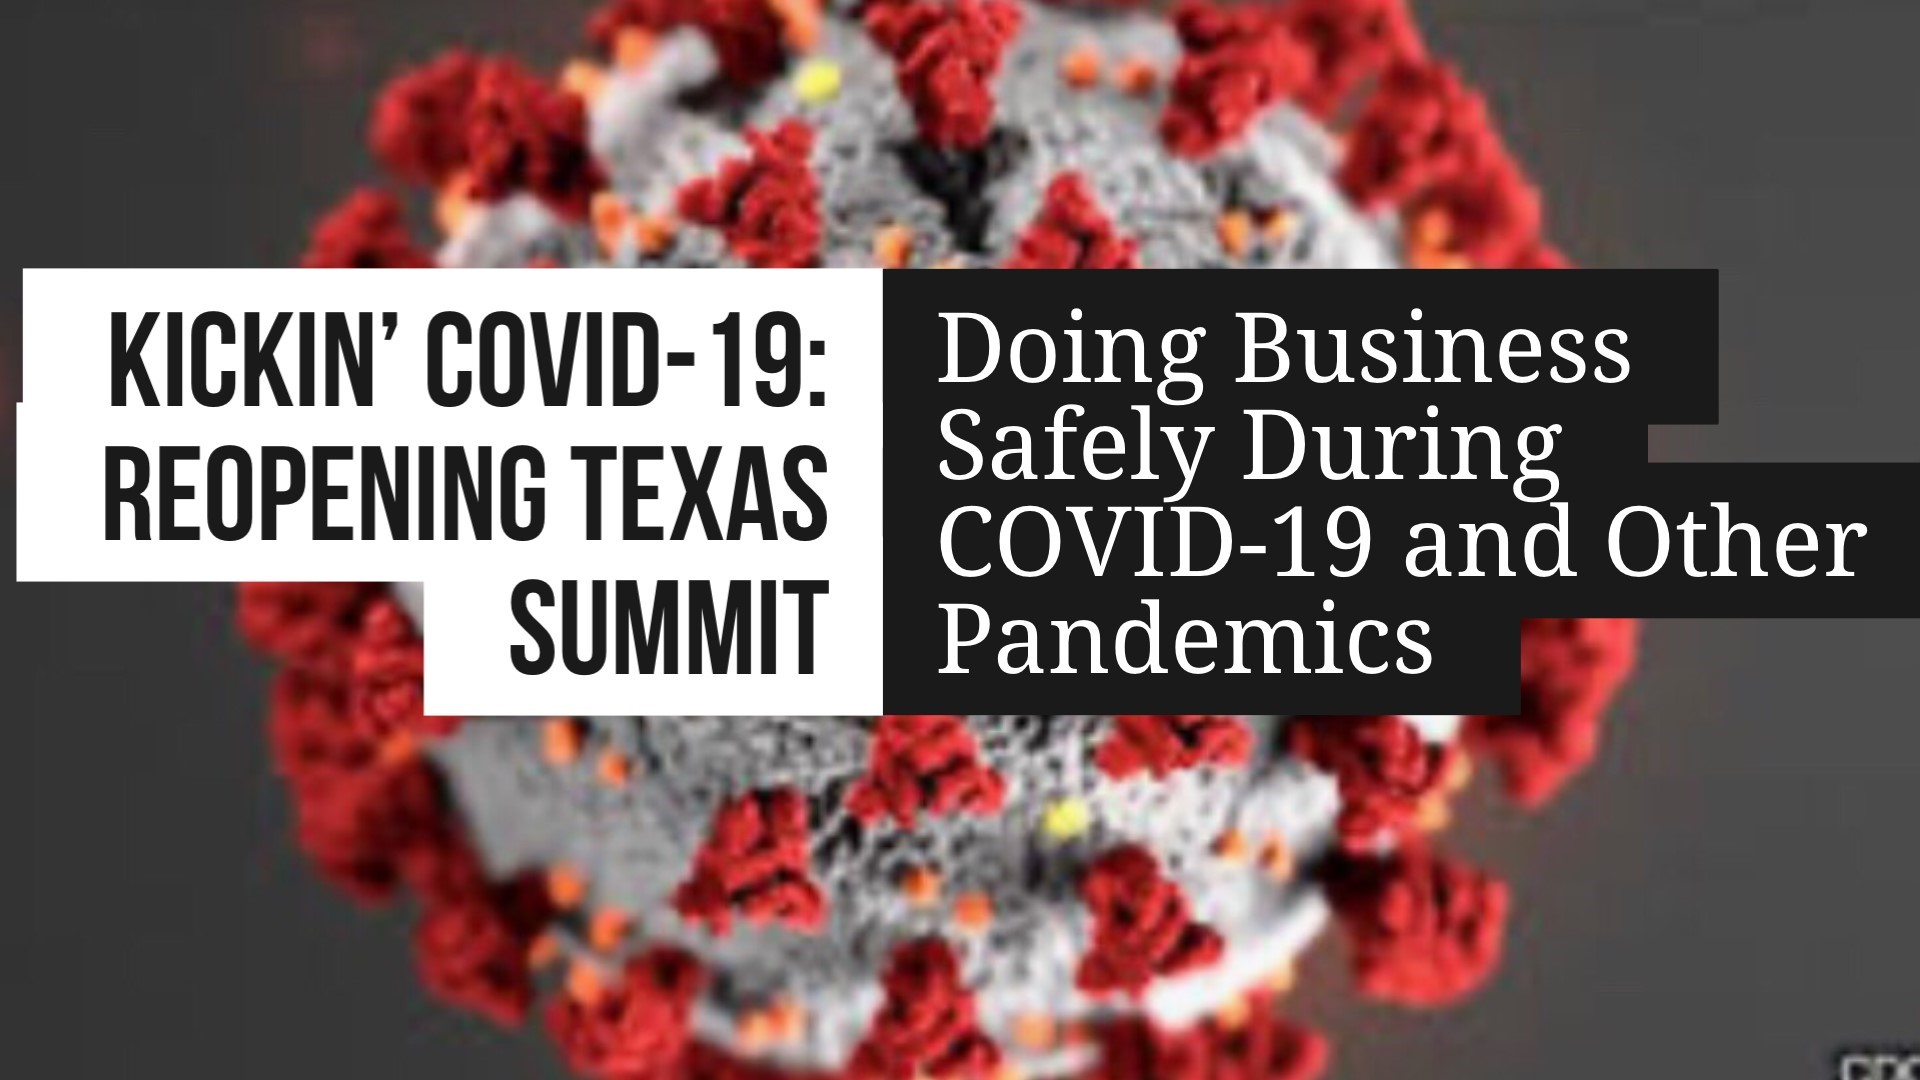 Kickin' COVID-19: Reopening Texas Summit October 8 On Facebook Live